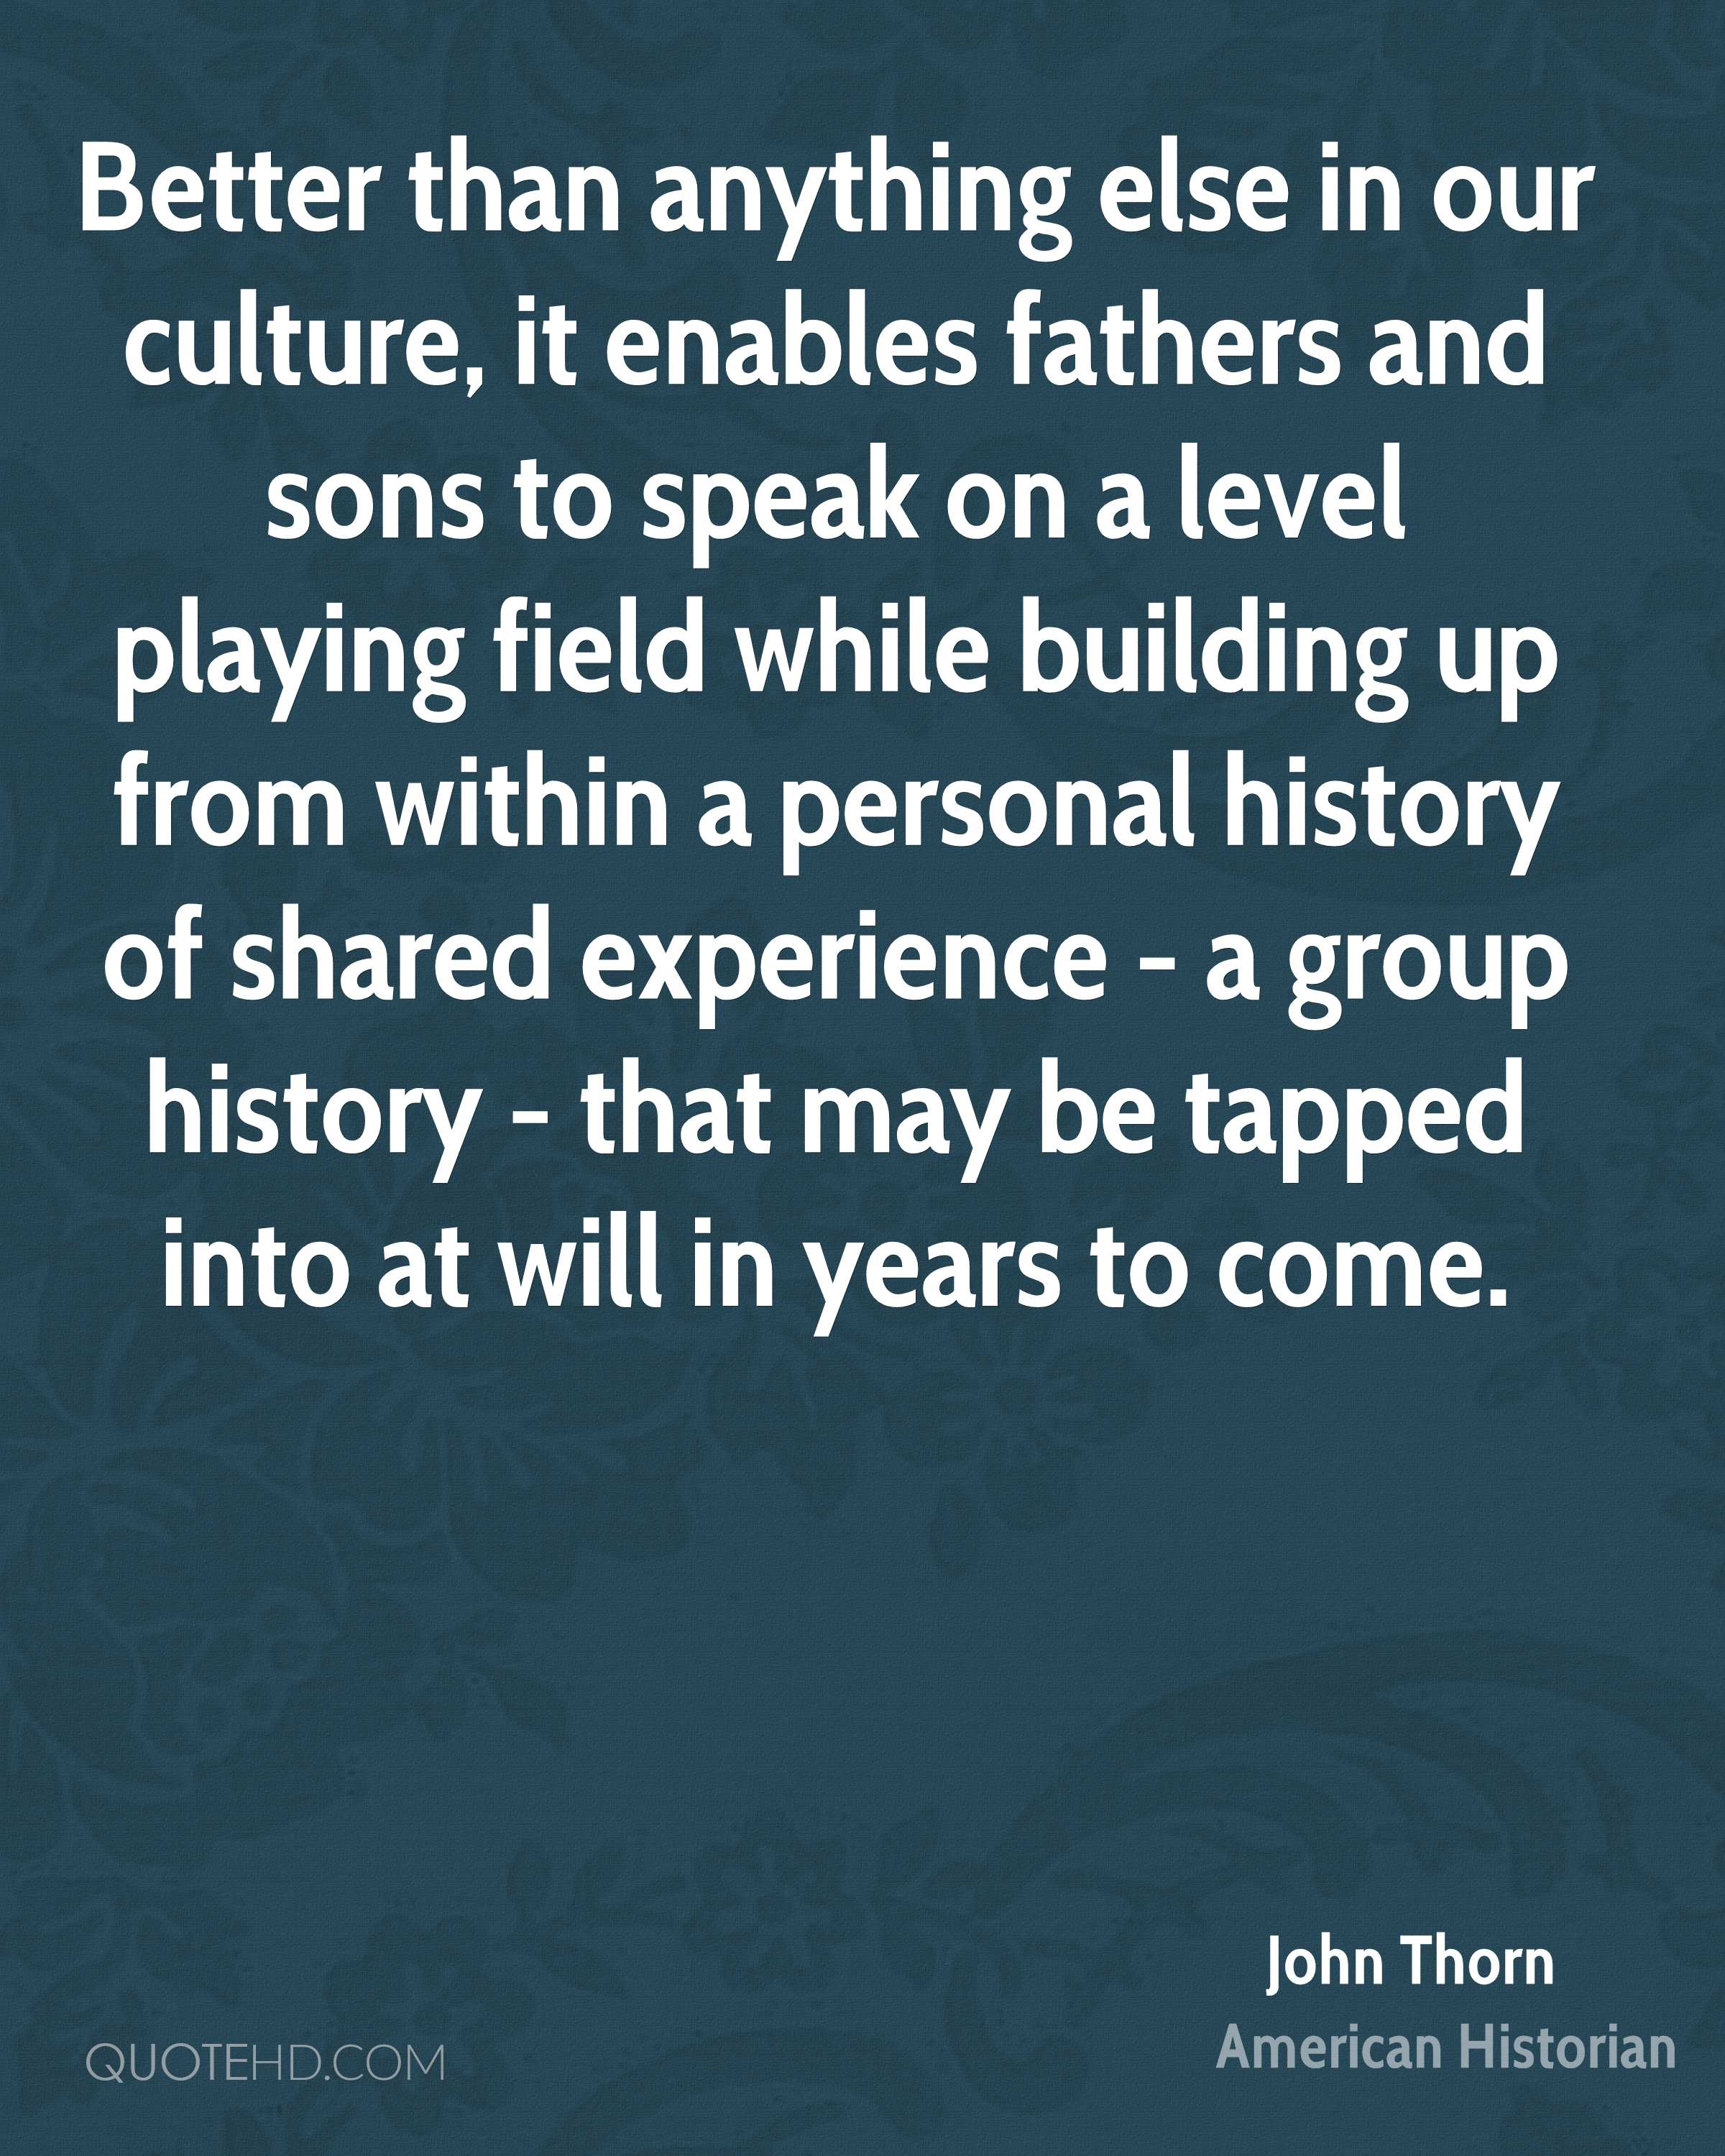 Better than anything else in our culture, it enables fathers and sons to speak on a level playing field while building up from within a personal history of shared experience - a group history - that may be tapped into at will in years to come.